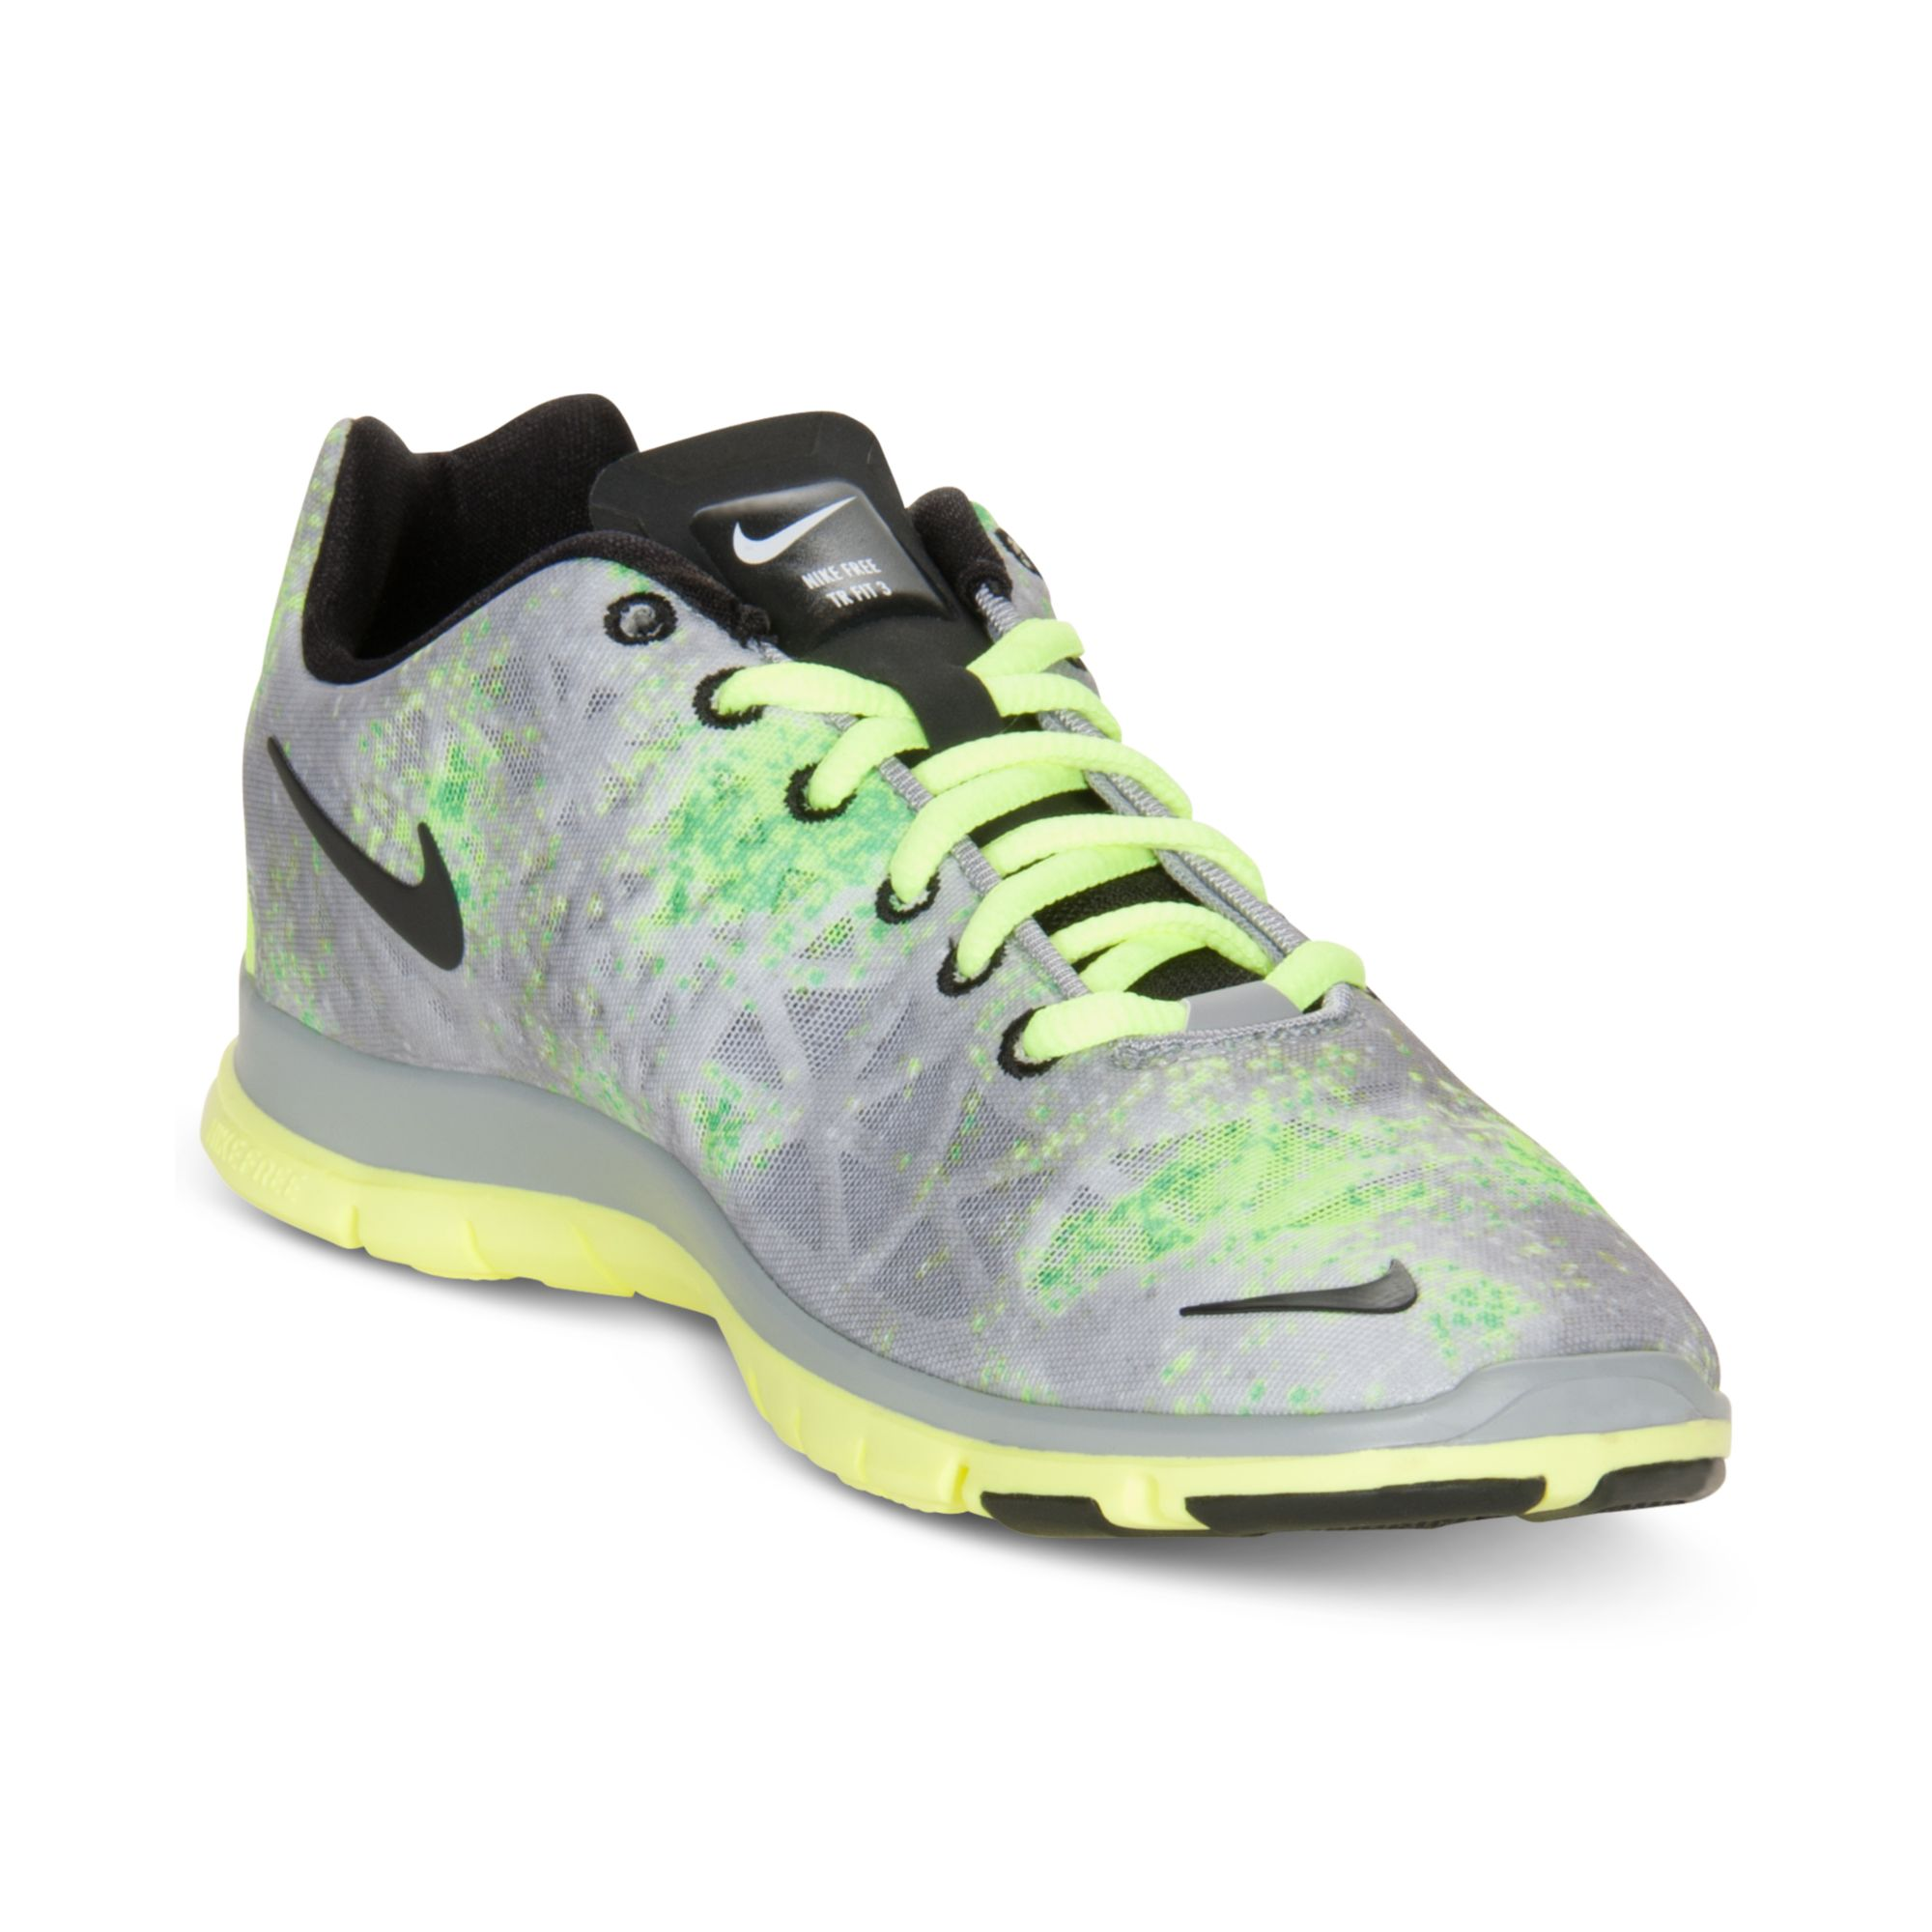 new product eaf88 54da9 Lyst - Nike Free Tr Fit 3 Print Sneakers